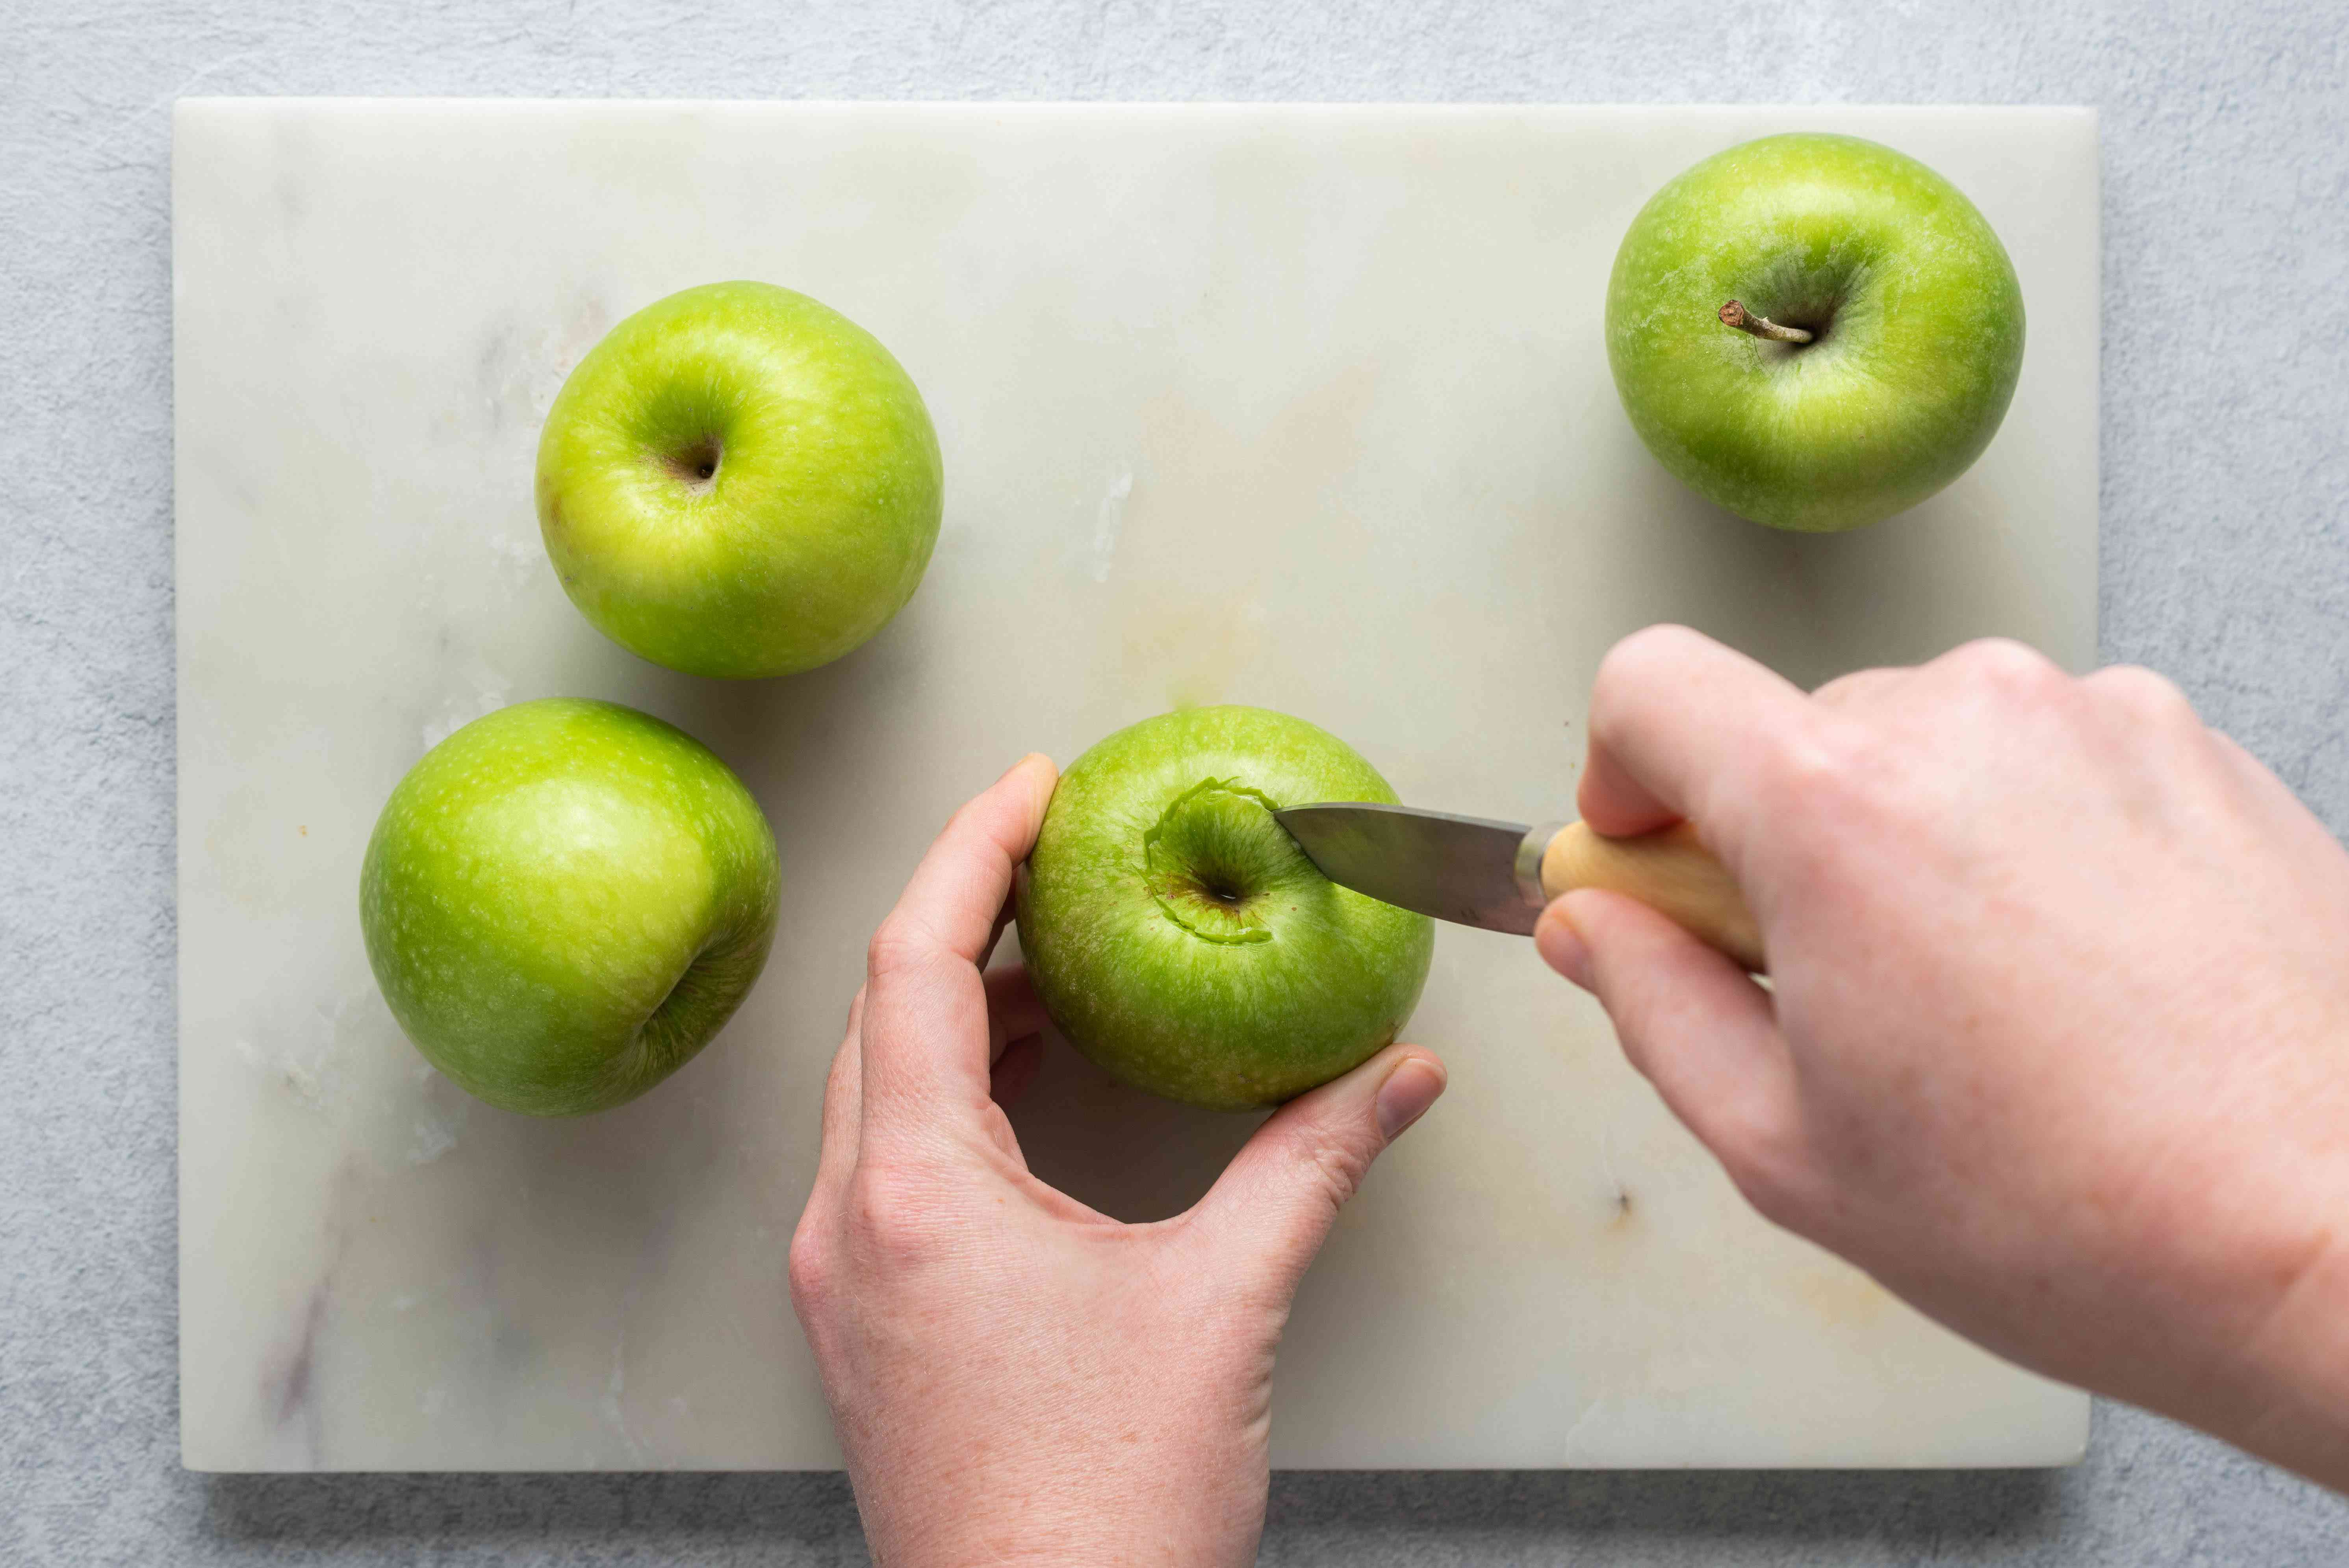 Cut around the core of the apple starting from the top to remove the inner core and seeds